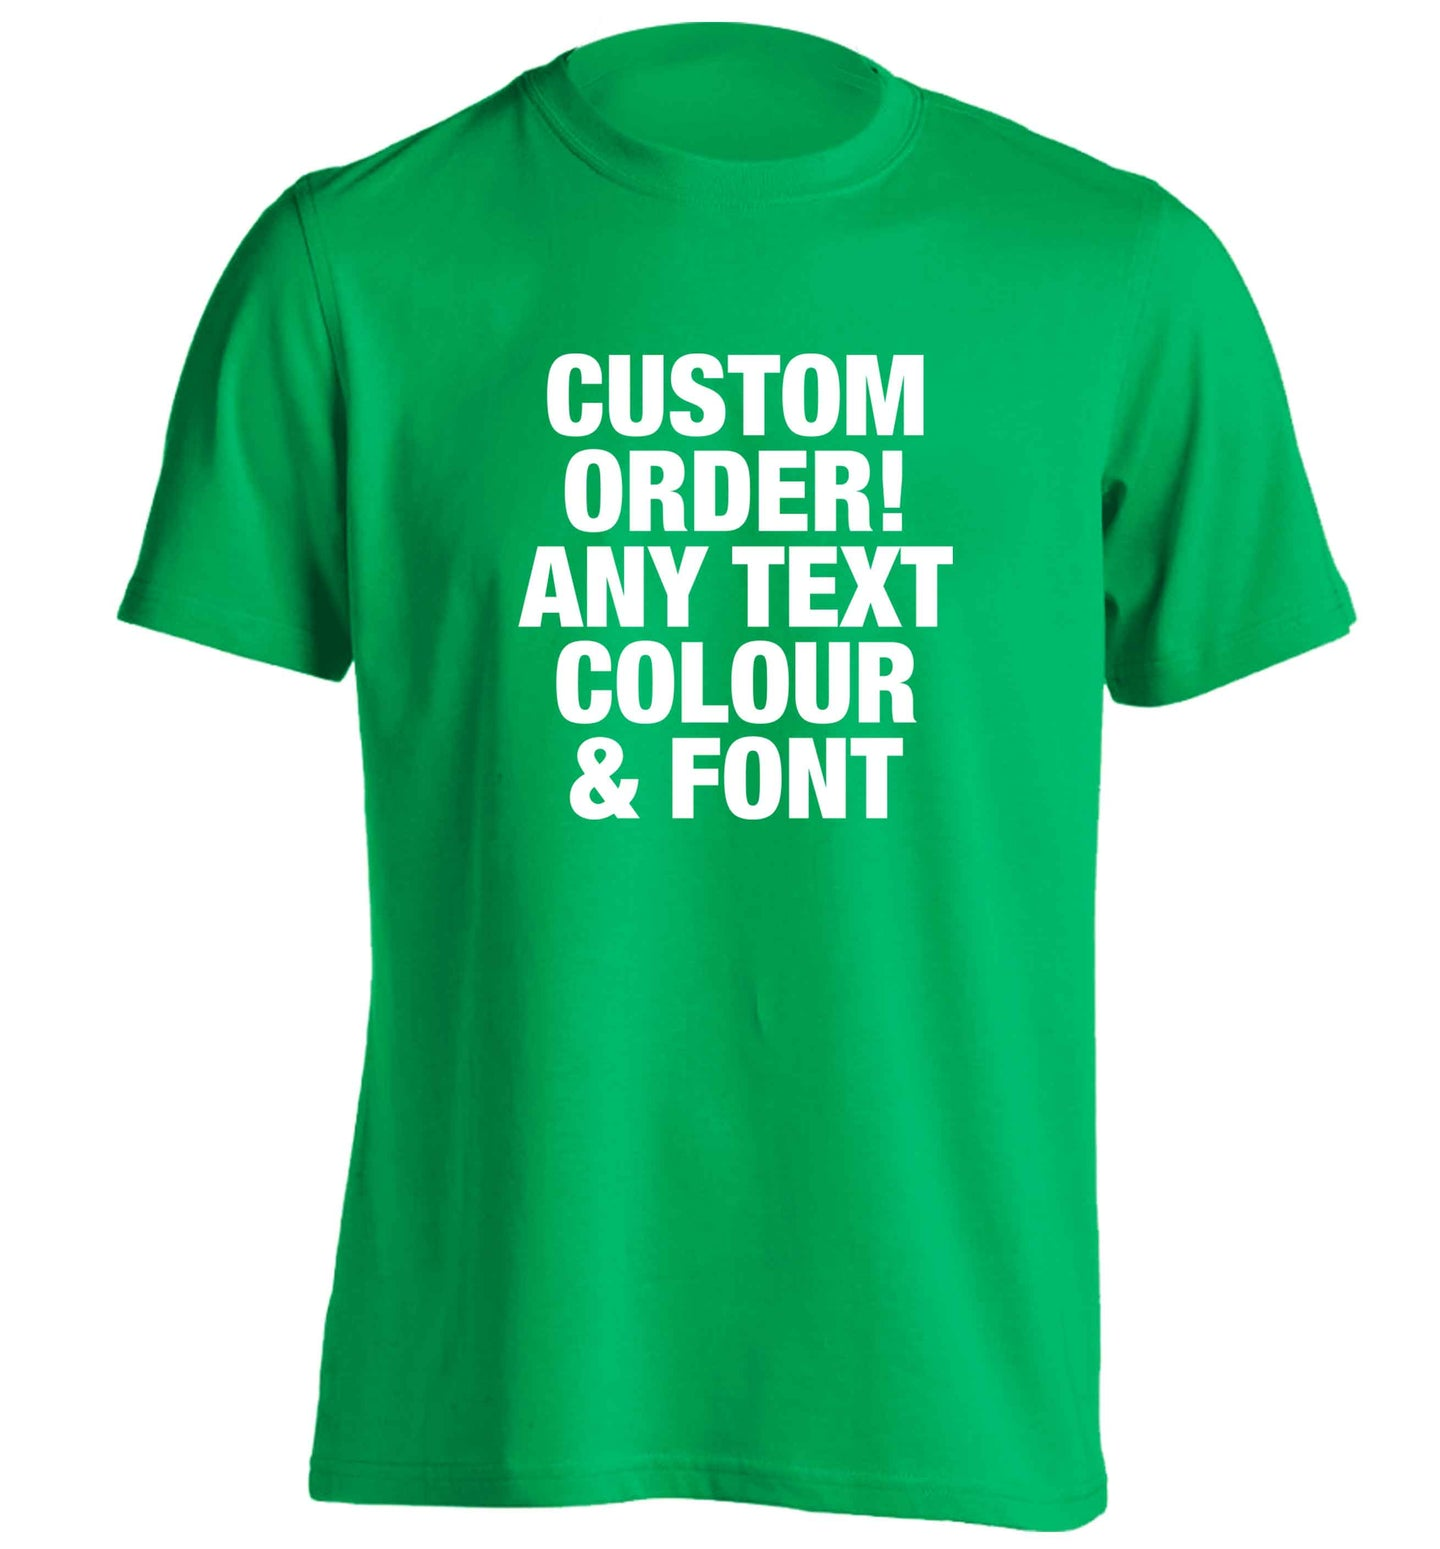 Custom order any text colour and font adults unisex green Tshirt 2XL